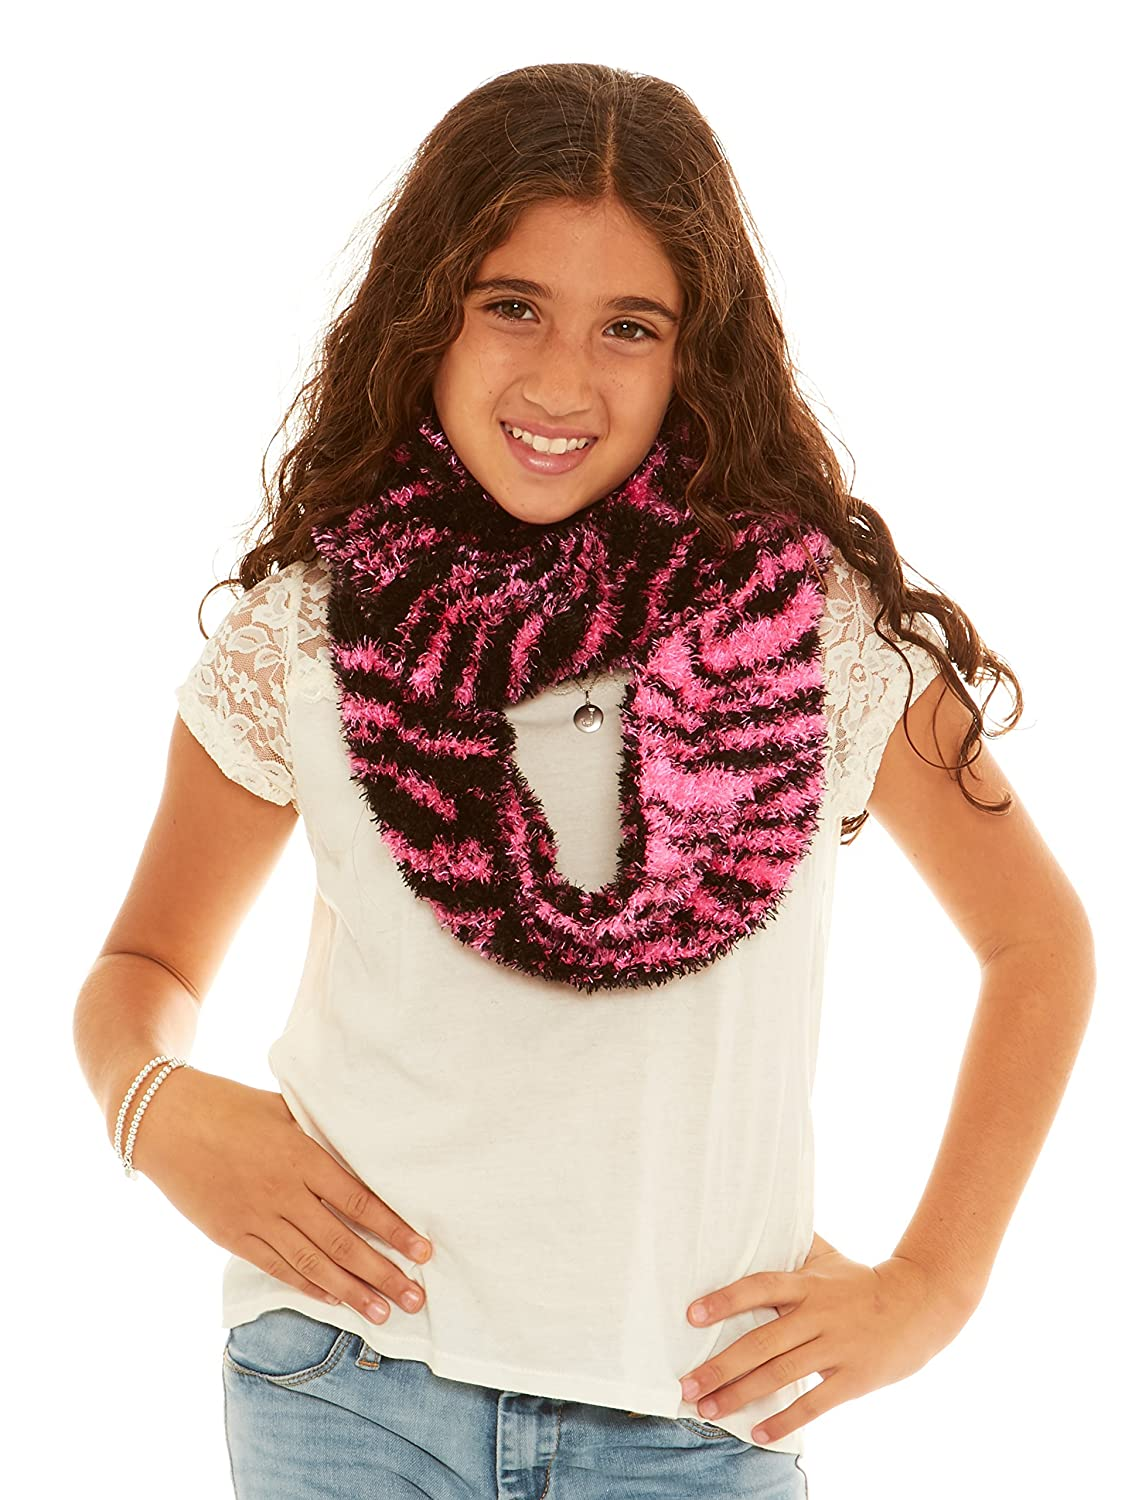 S.W.A.K Girls Loop Infinity Fashion Scarf B6B1553G-F